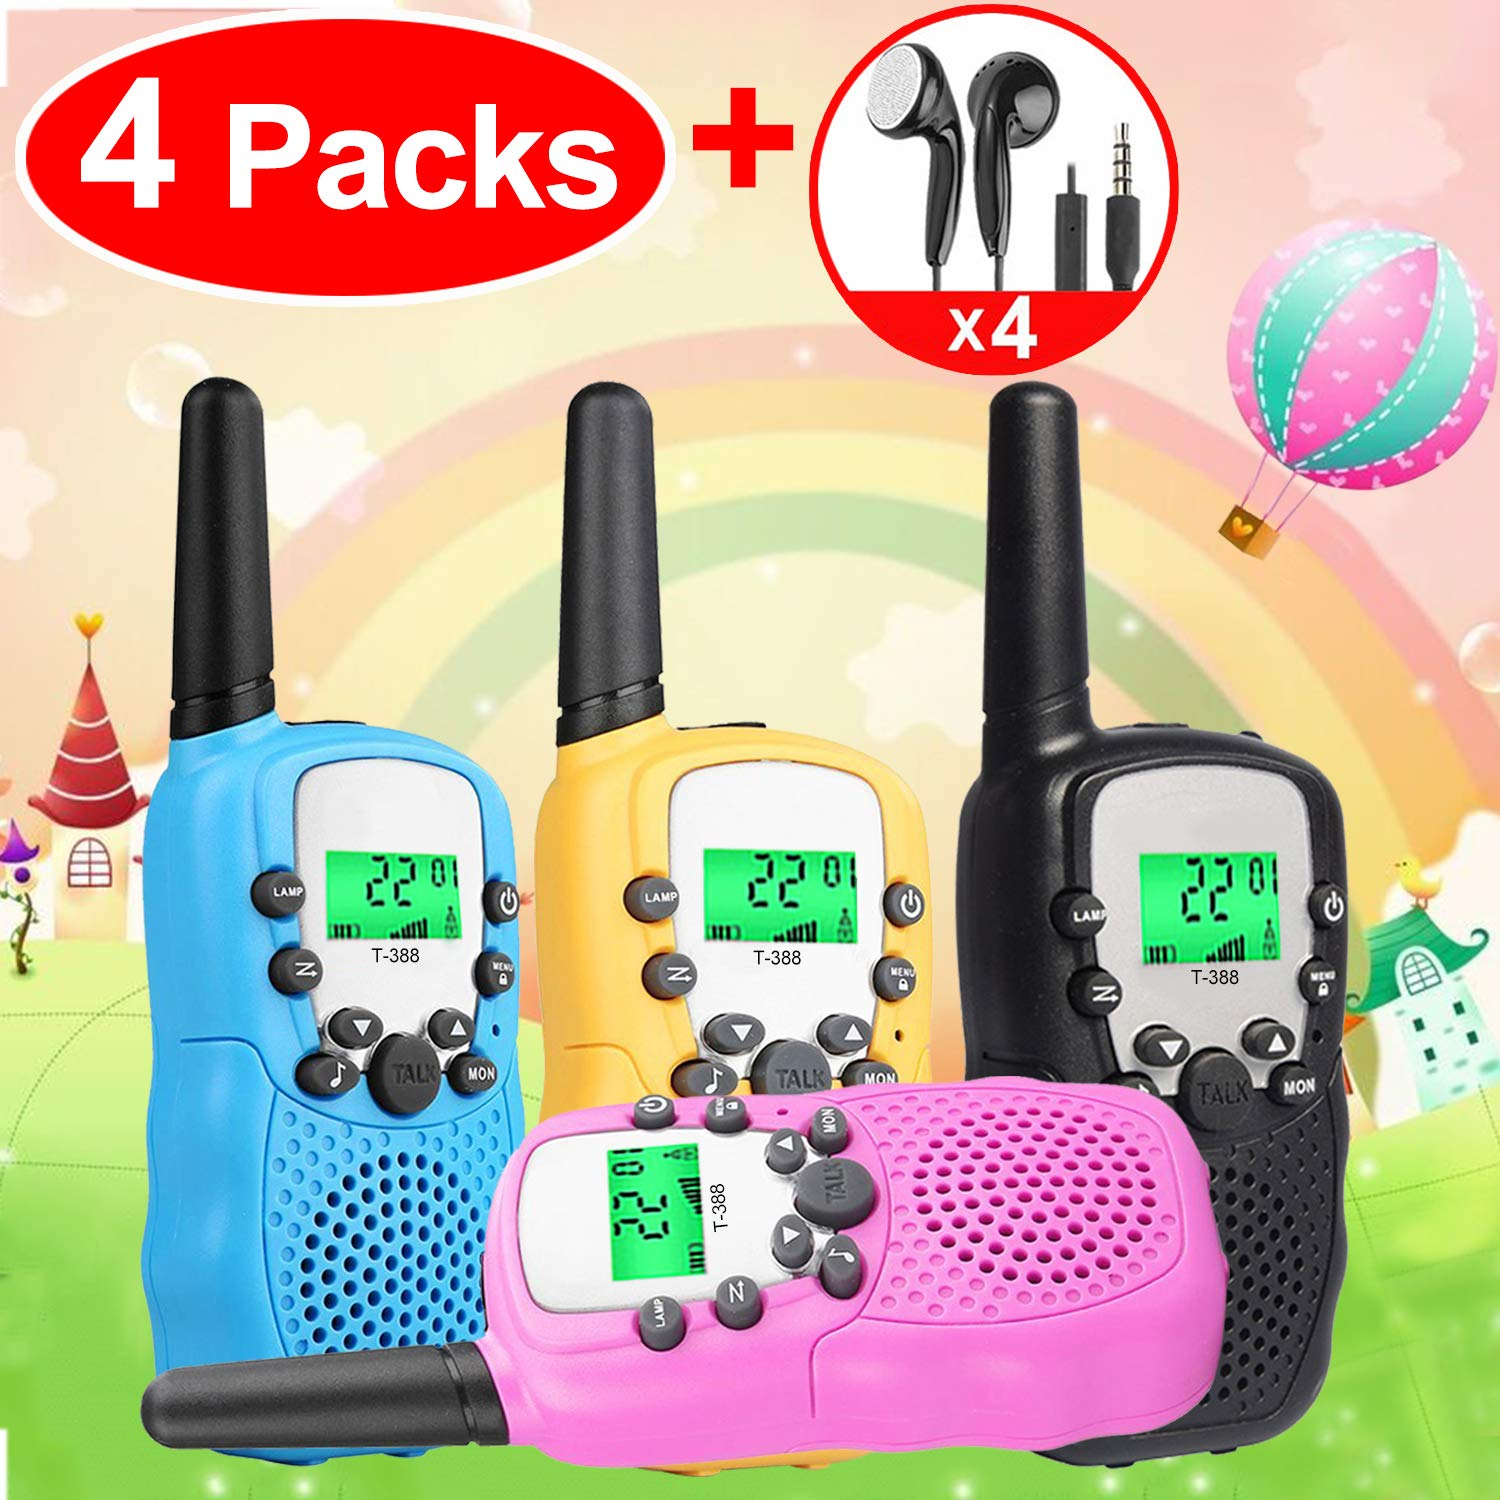 Kids Walkie Talkies Toys for 3-12 Year Old Boys Girls Toddlers, 4 Pack Walkie Talkies with 4 Earphones, 3 Mile Range 22 Channel Flashlight Two-Way Radio, Accessory for Outdoor Adventure Camping Game